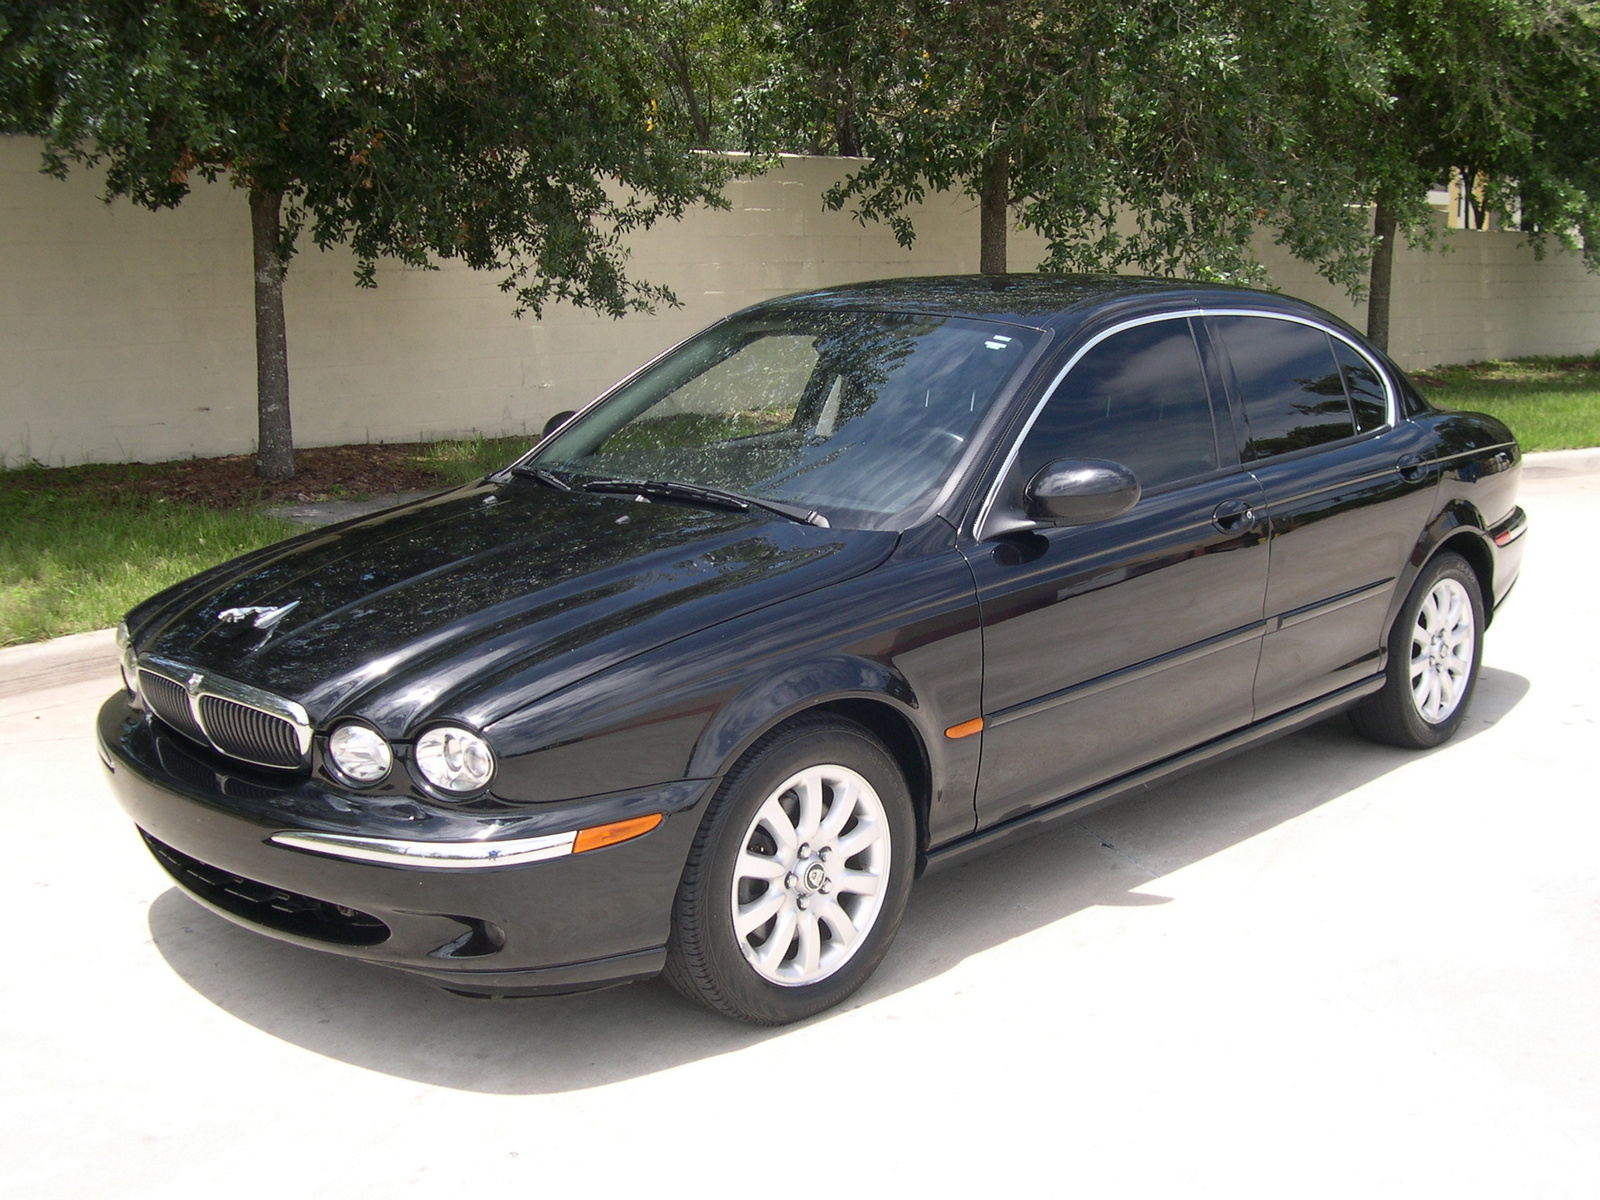 2003 jaguar x type exterior pictures cargurus. Black Bedroom Furniture Sets. Home Design Ideas